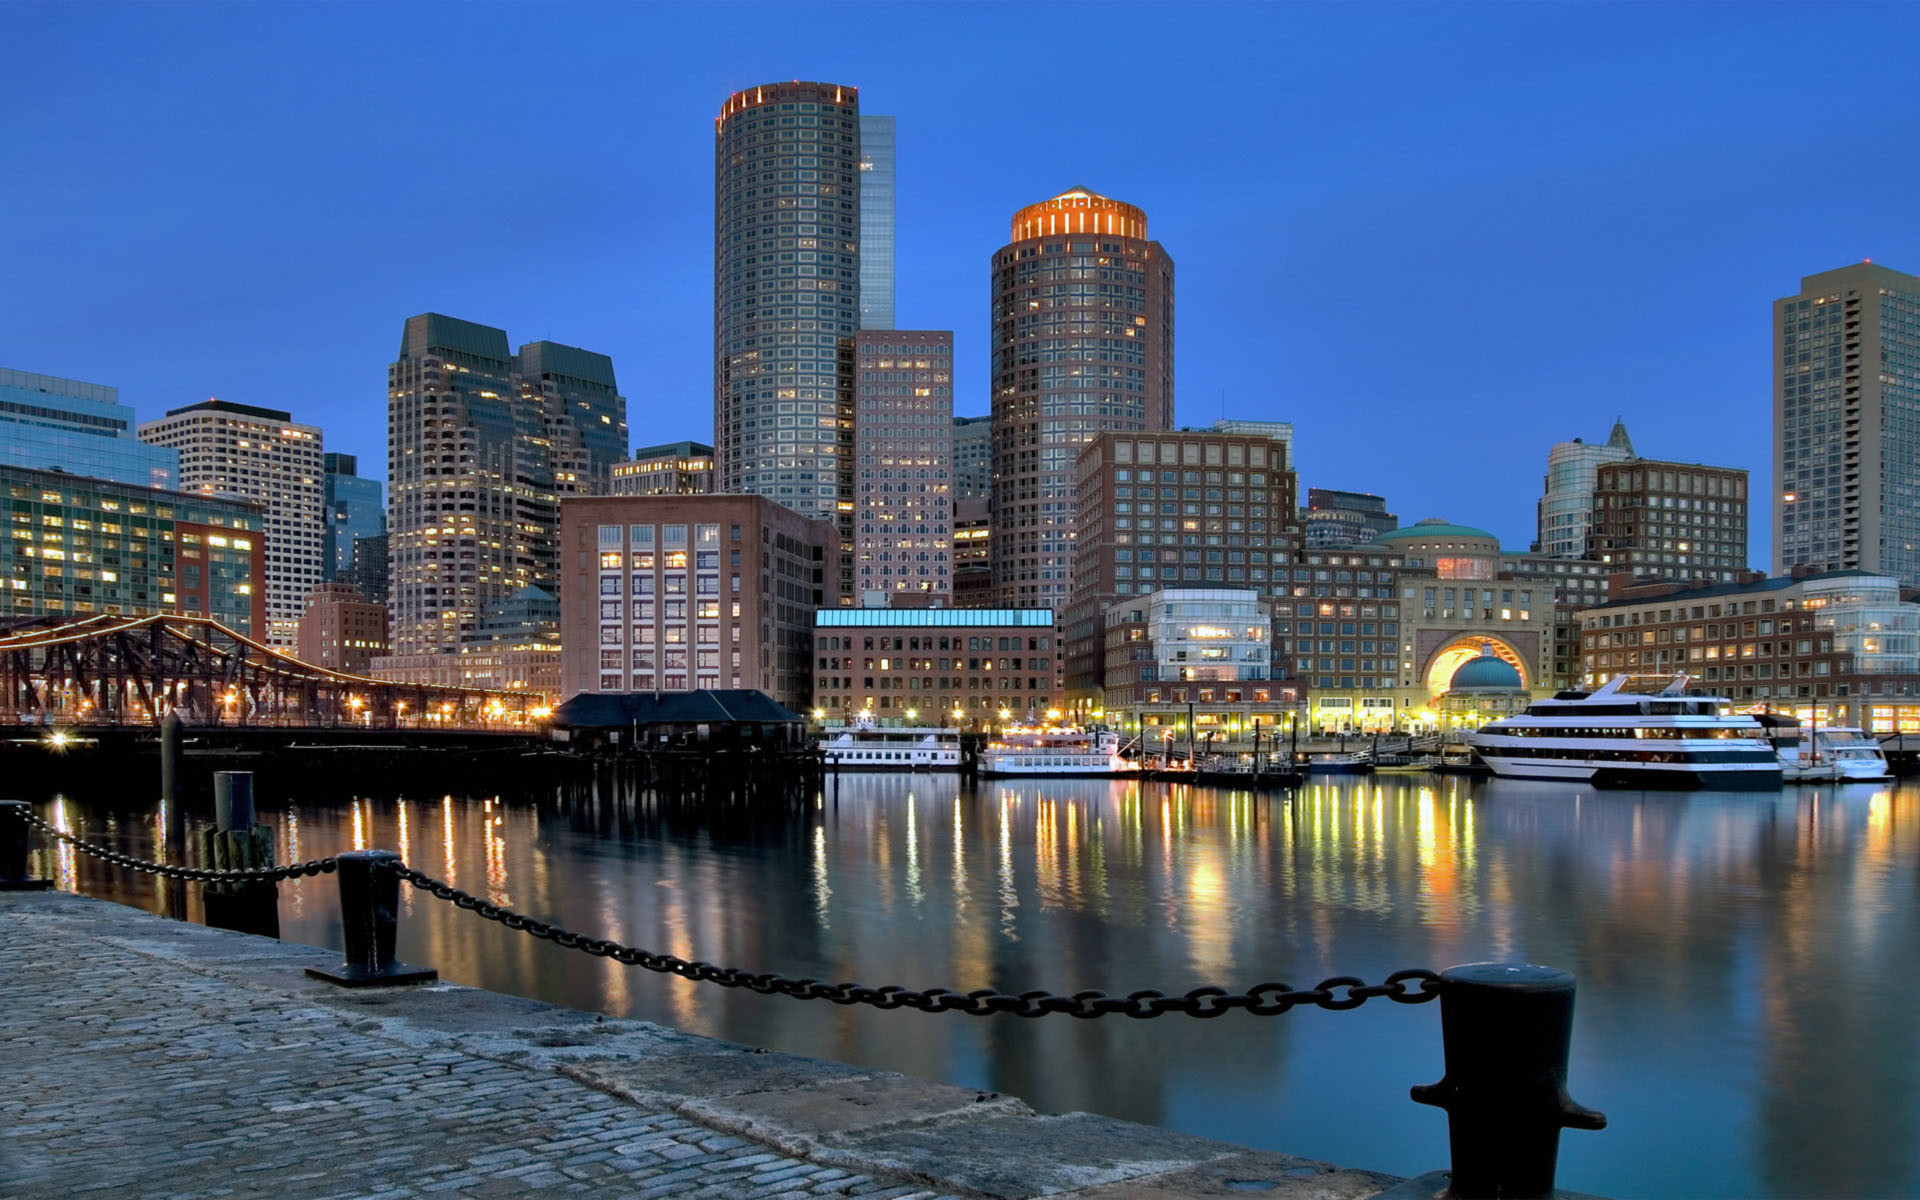 1920x1200 widescreen-boston-city-wallpaper-america-backgrounds-mac